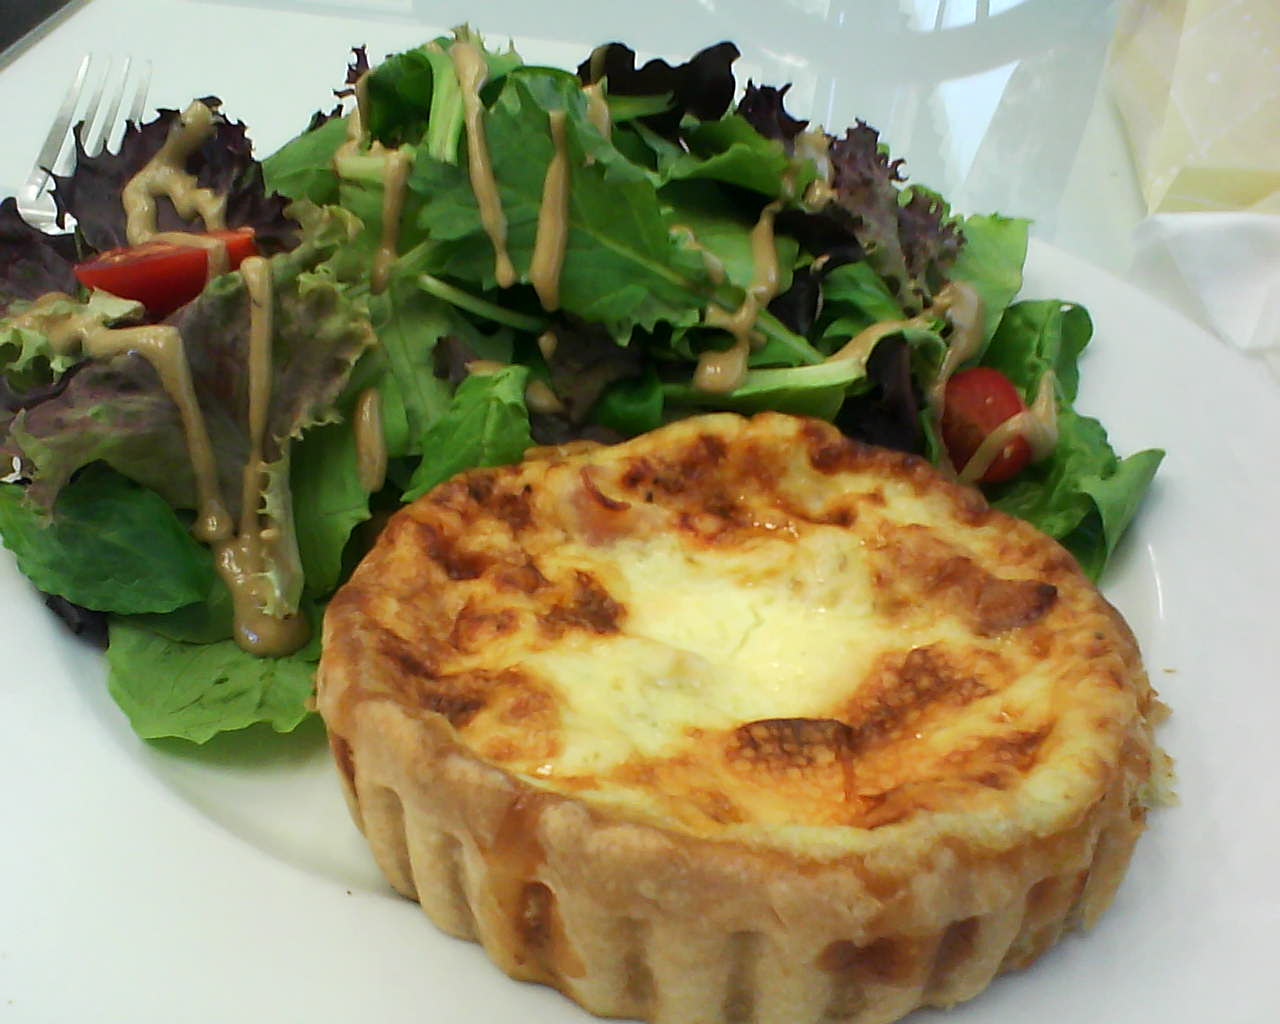 Pillowy perfect Quiche Lorraine and greens with a Dijon vinaegrette at Le Patissier.